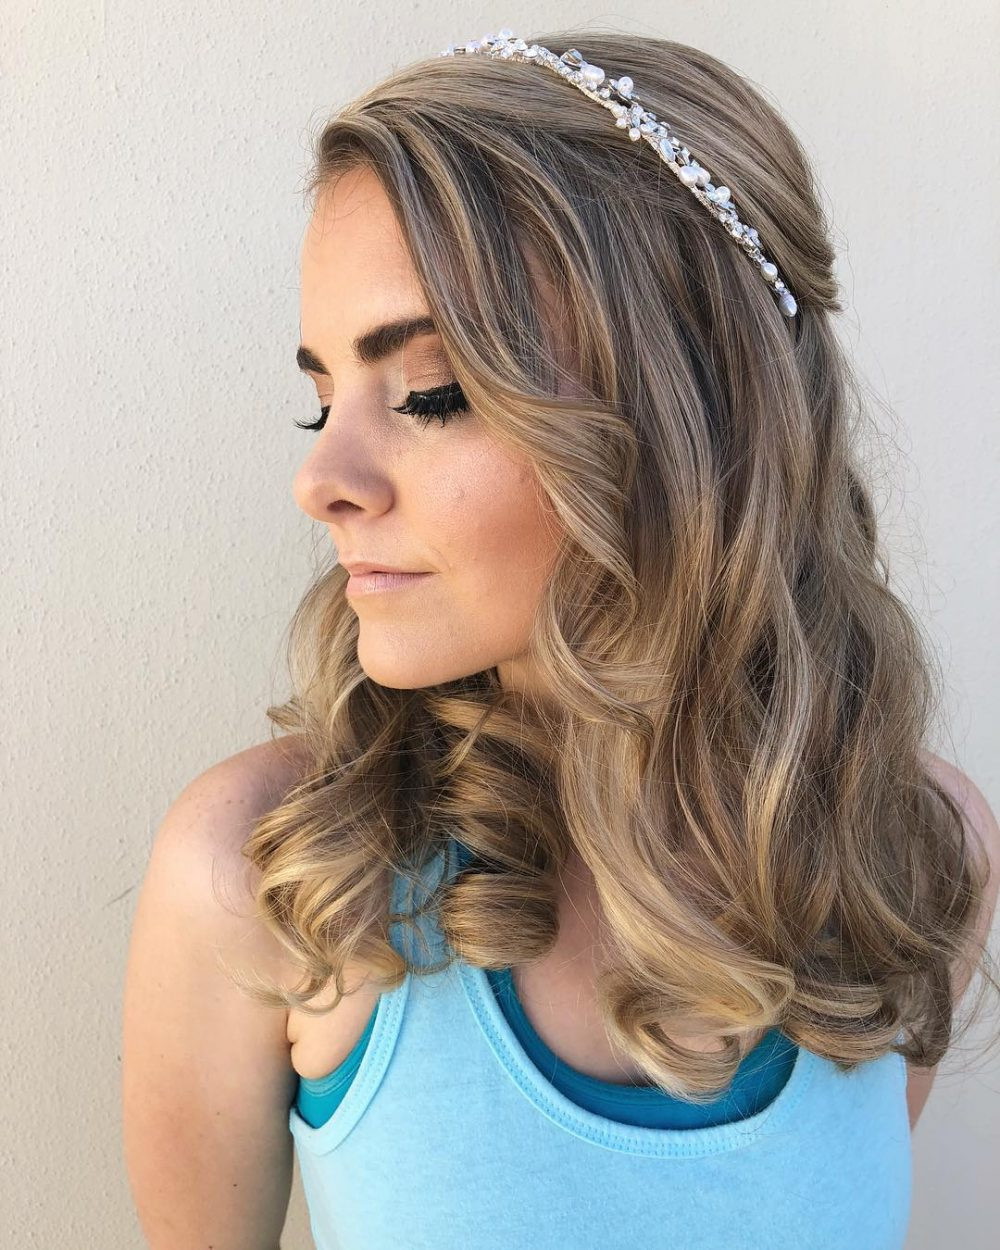 Best ideas about Prom Hairstyle Medium Hair . Save or Pin Prom Hairstyles for Medium Length Hair and How To s Now.